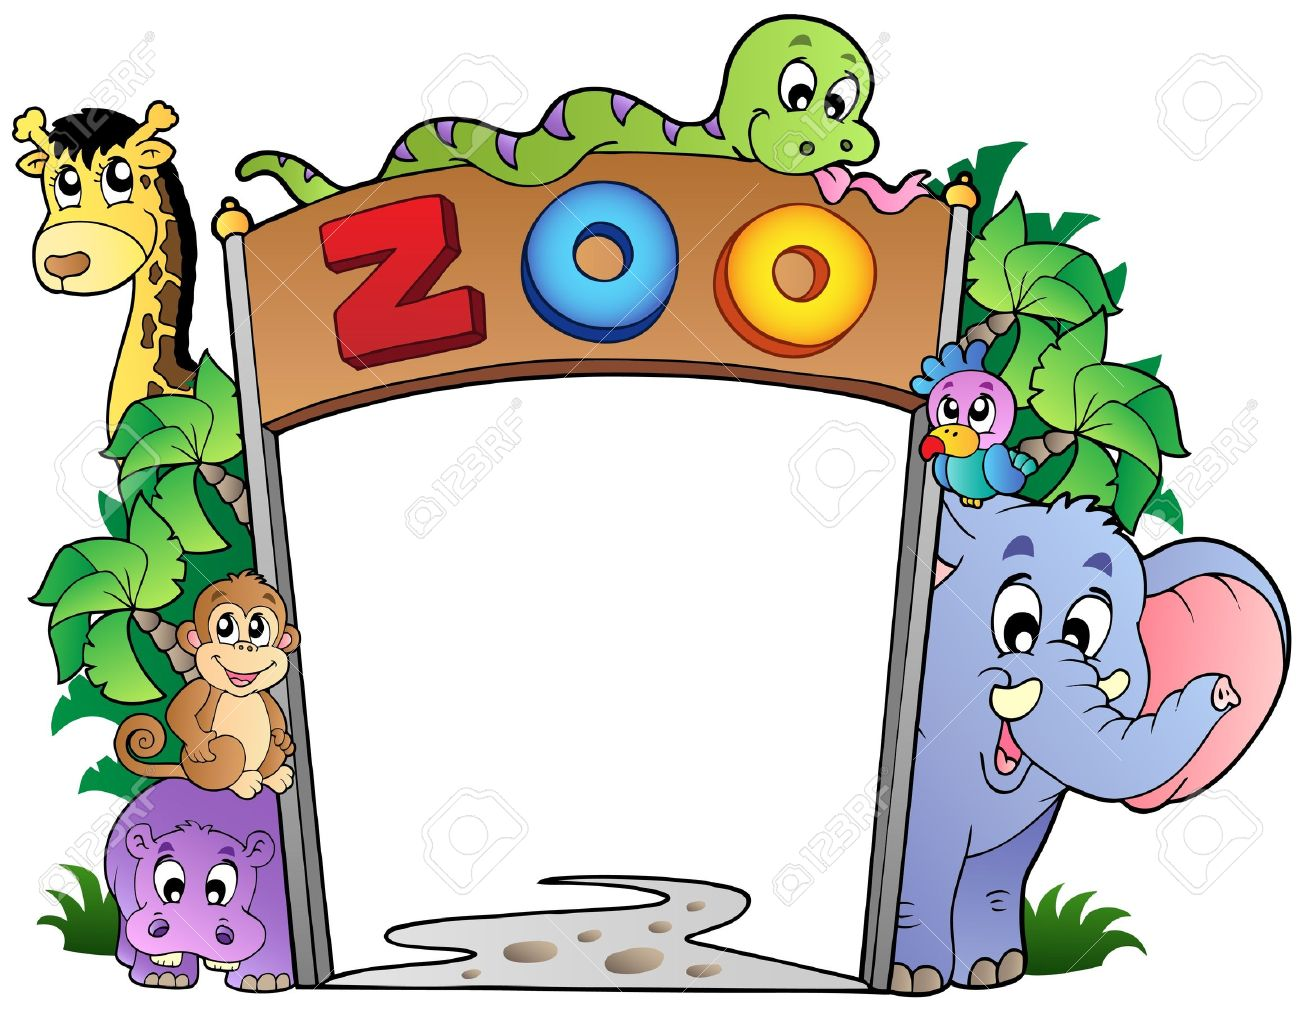 Zoo entrance with various animals.